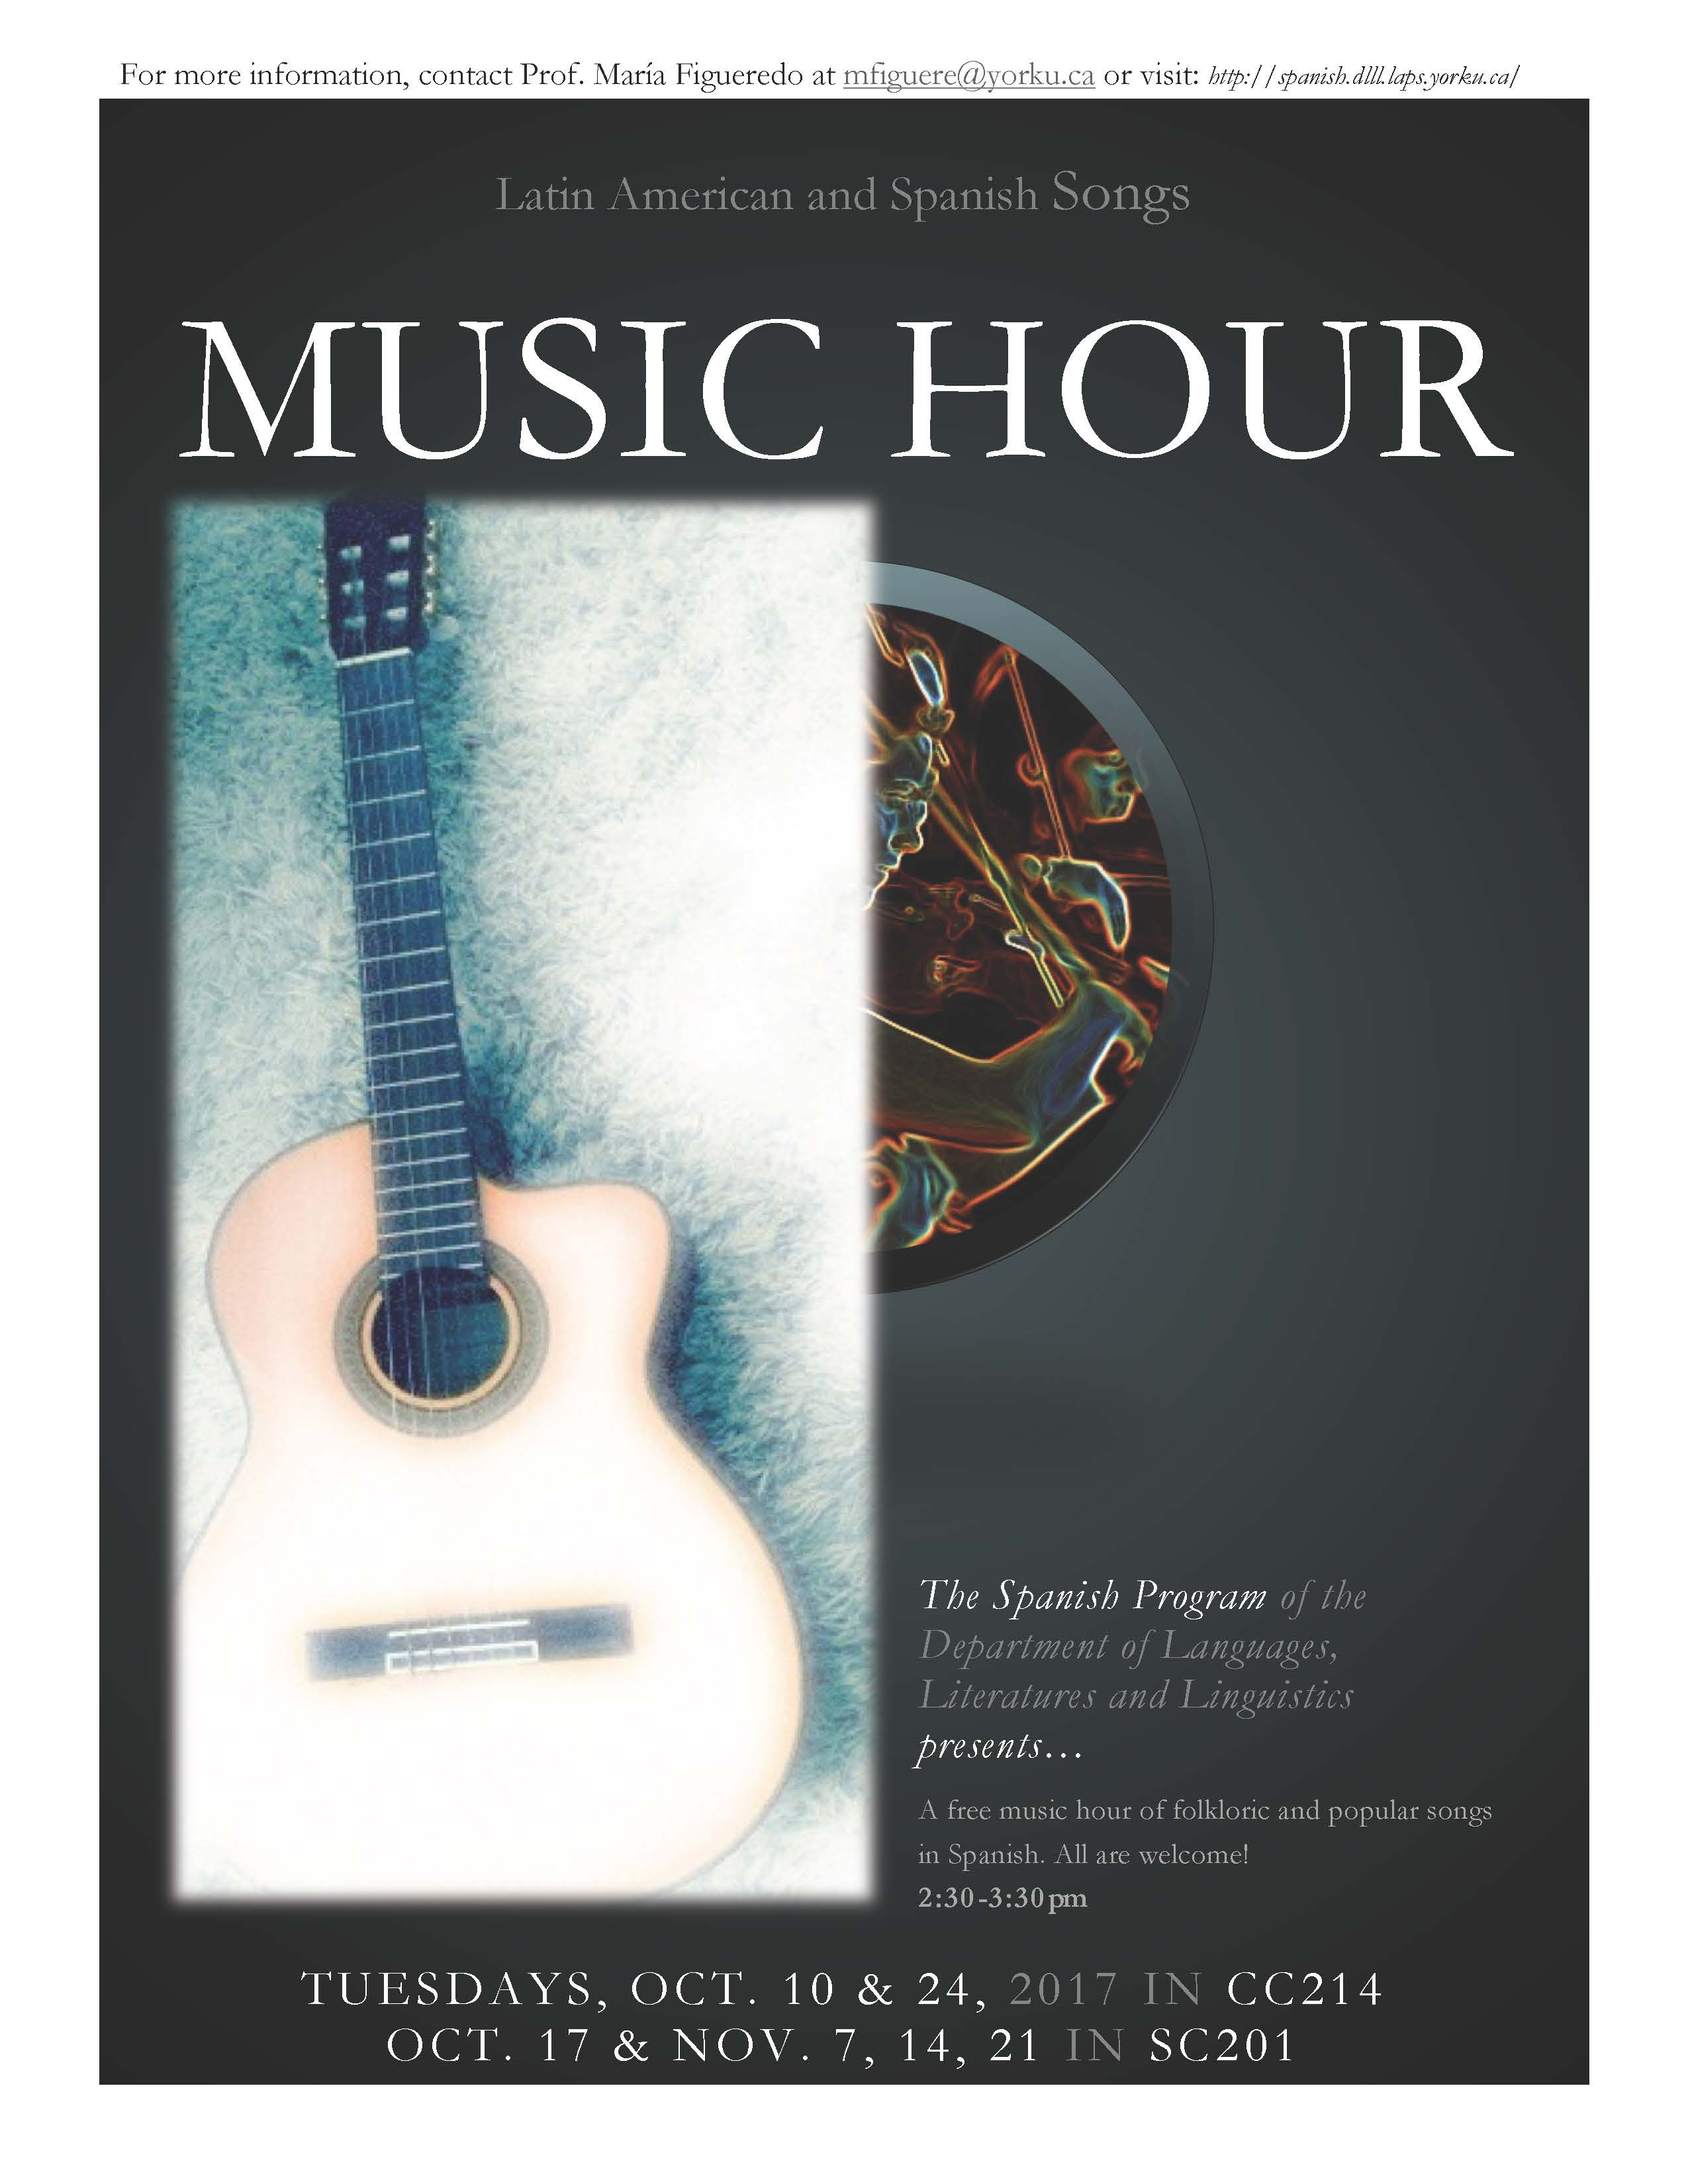 Music Hour Poster